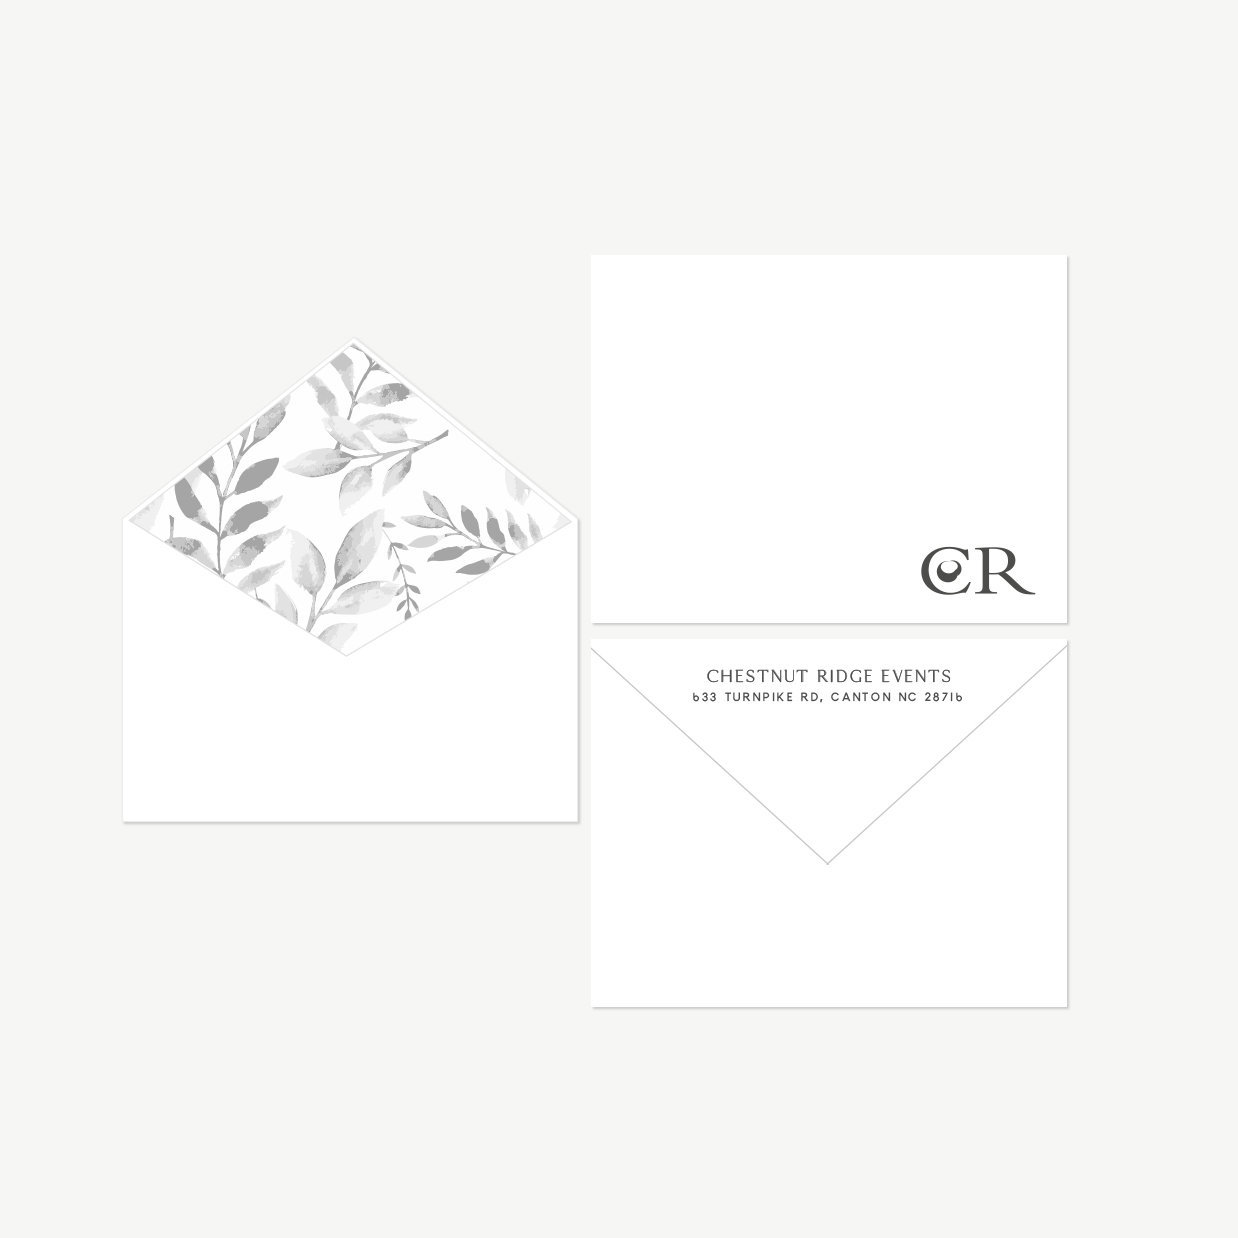 ChestnutRidge_Envelope_v01